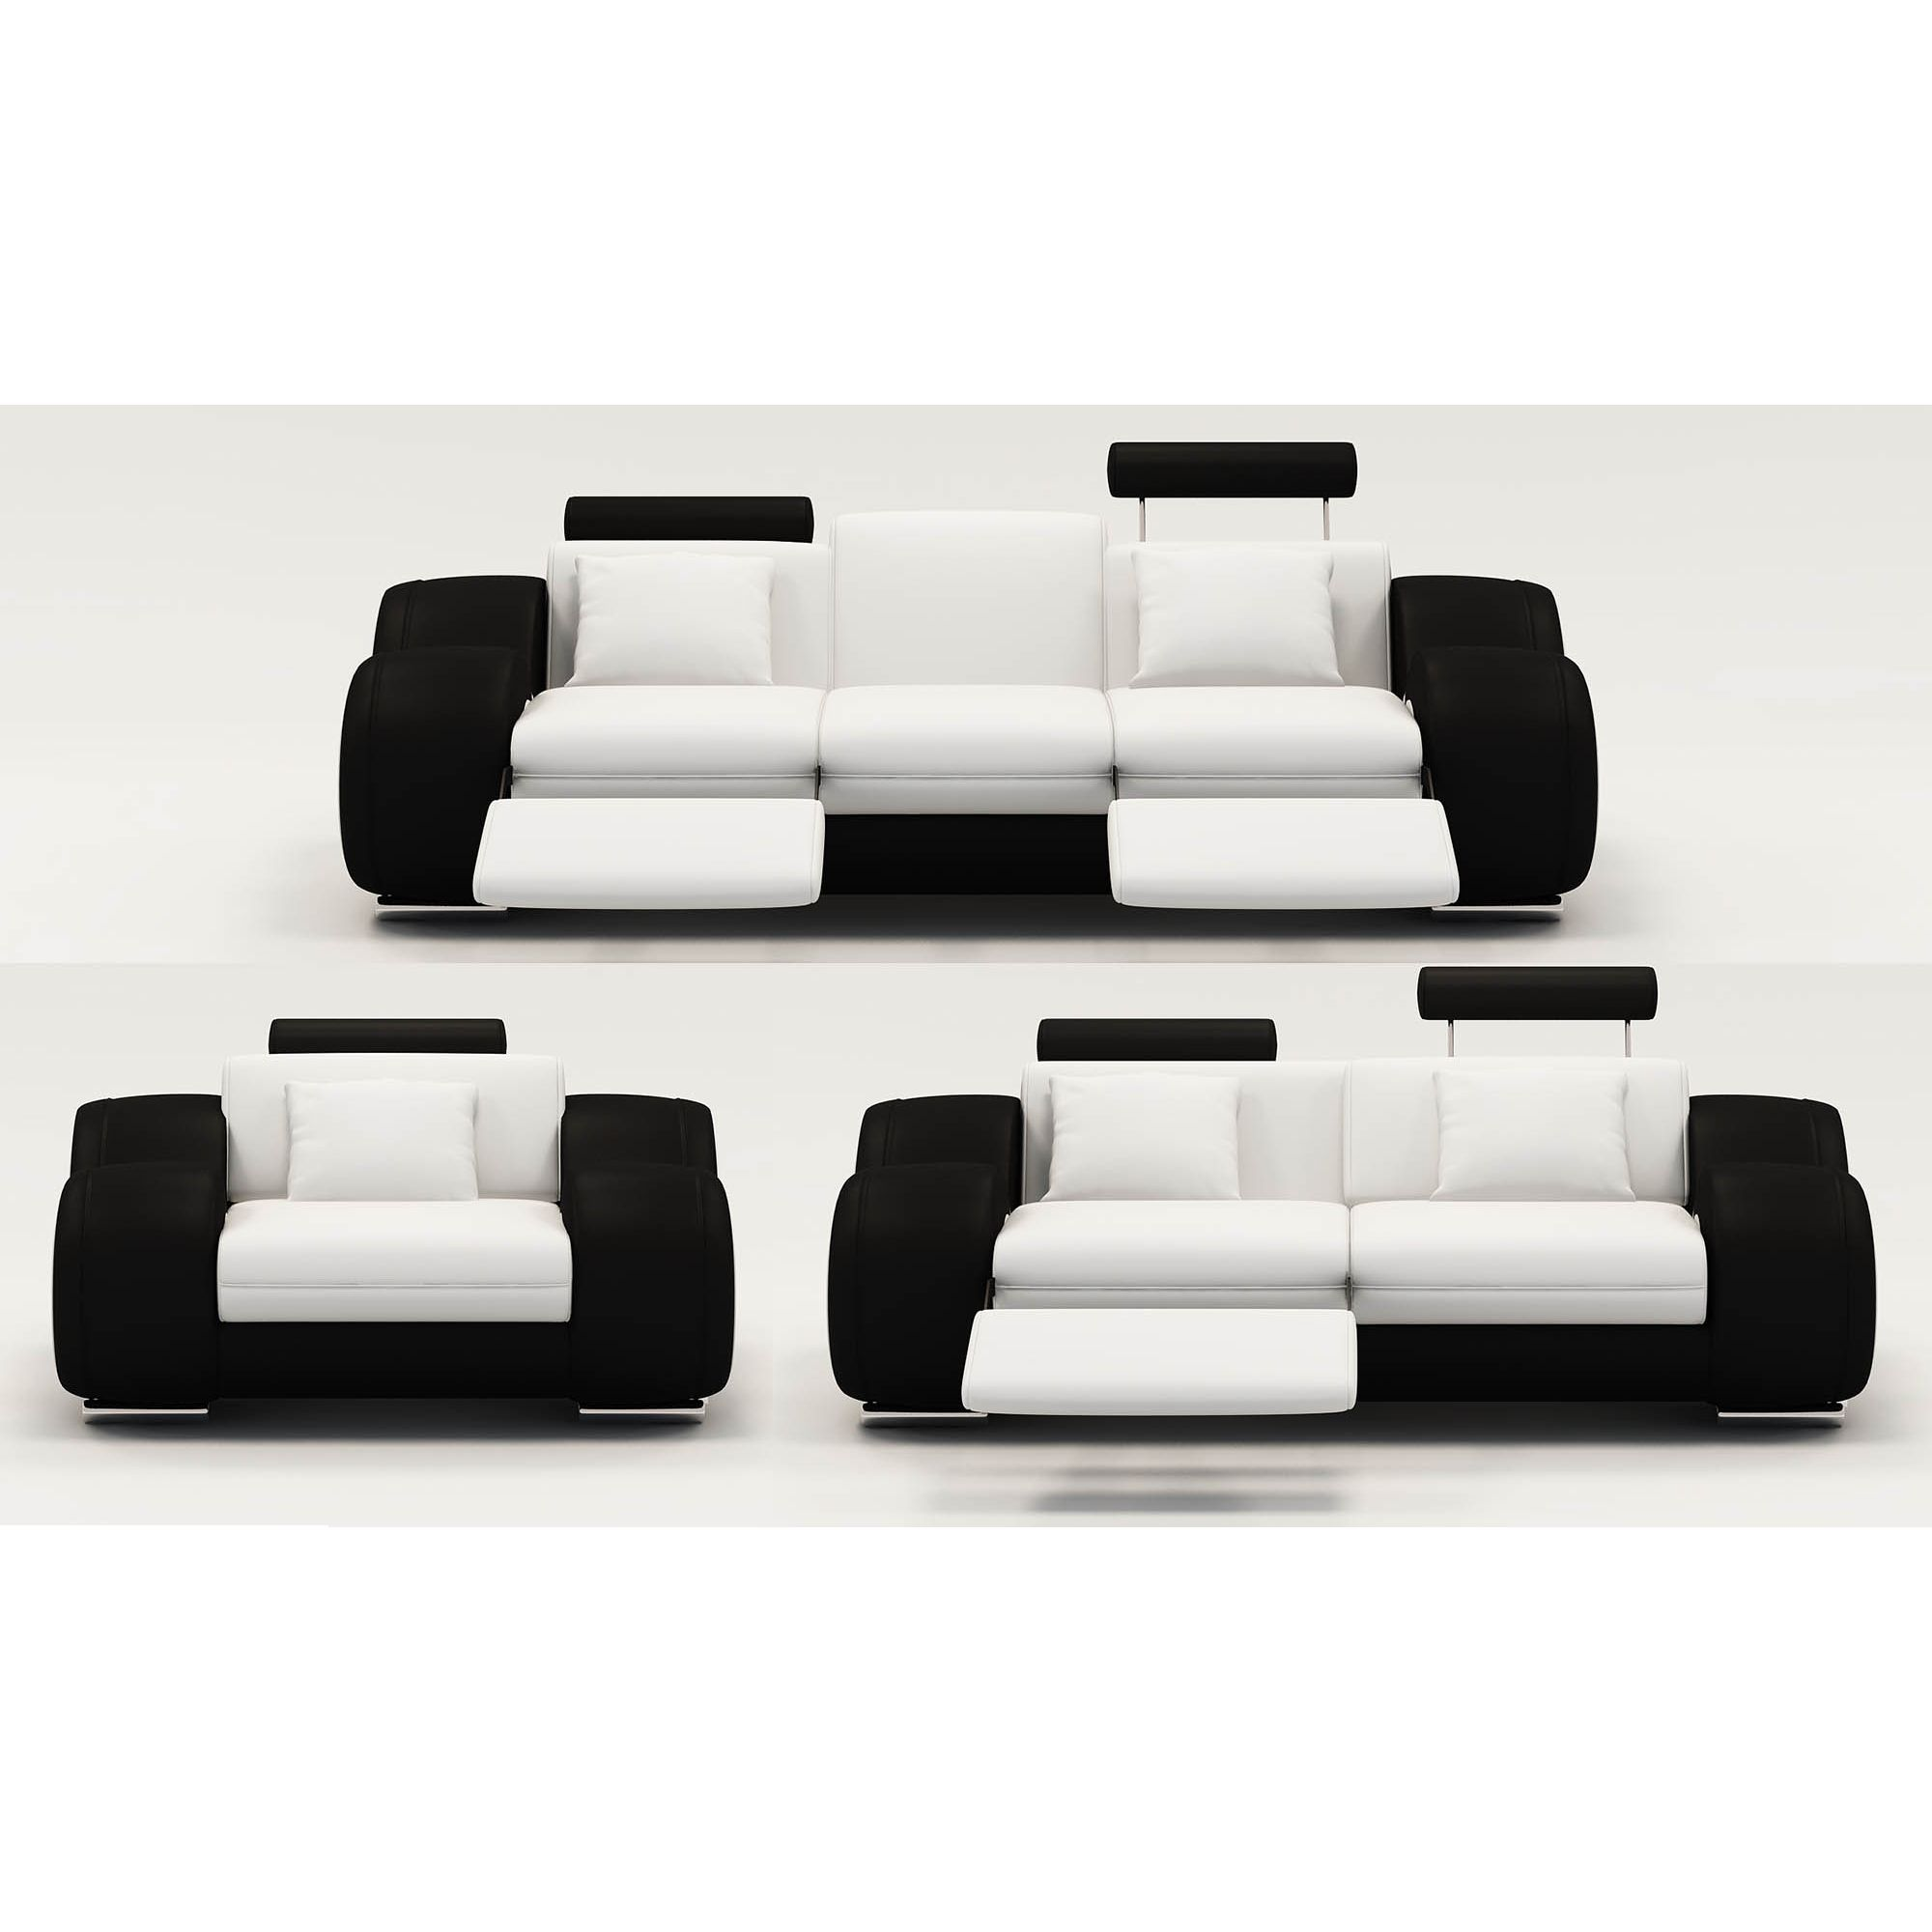 Deco in paris ensemble canape relax design 3 2 places - Canape design noir et blanc ...